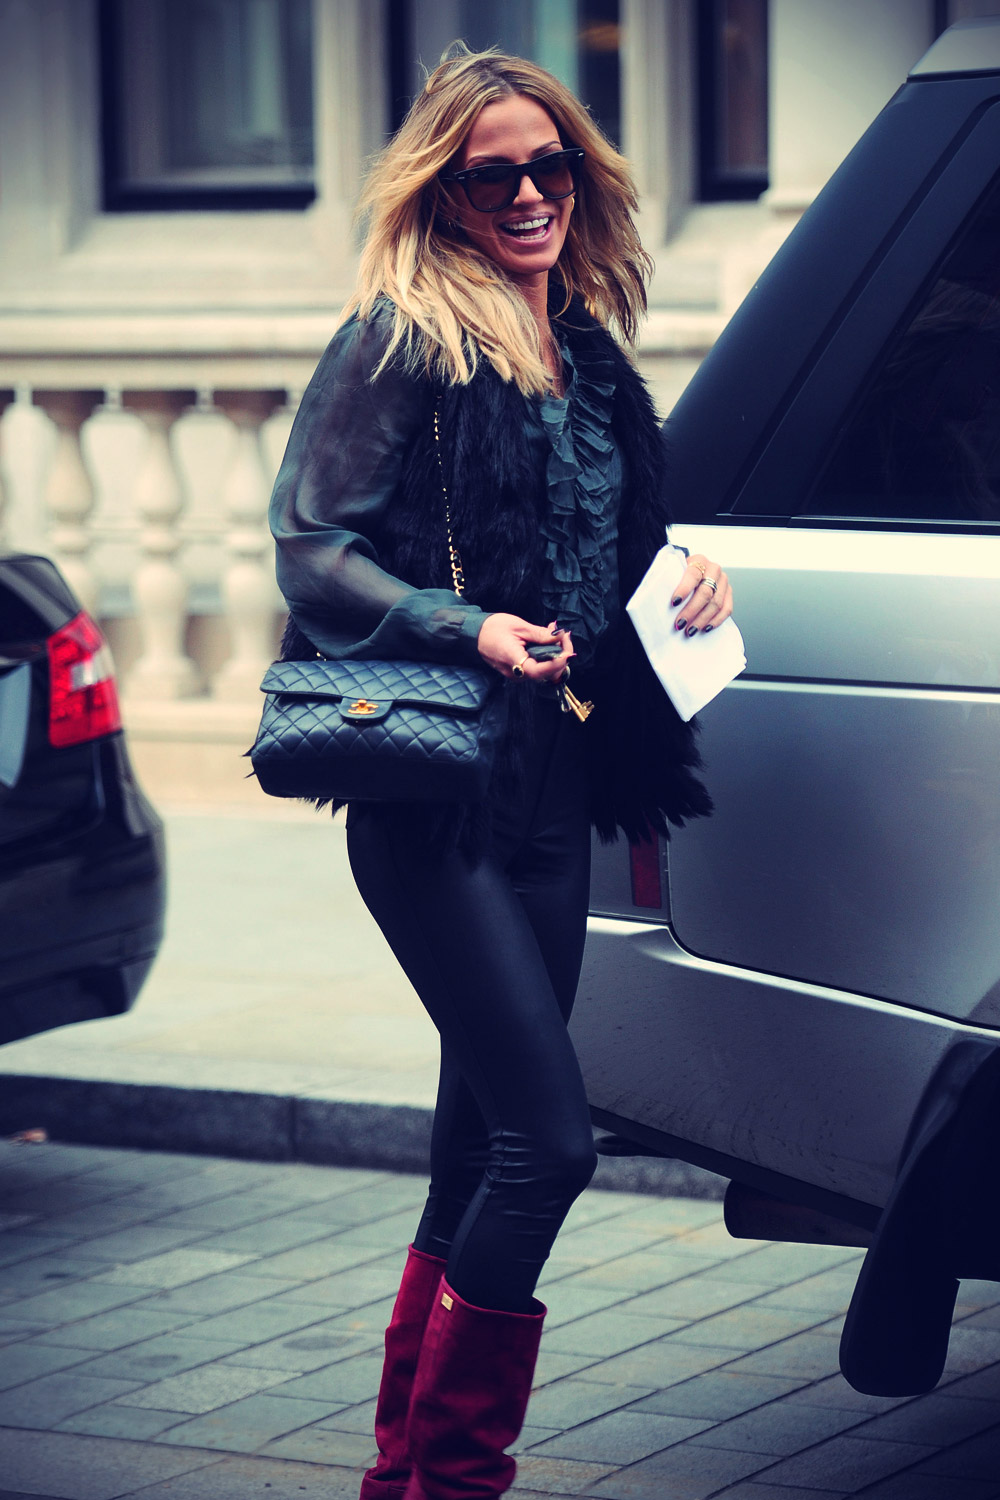 Sarah Harding sighting out and about in London